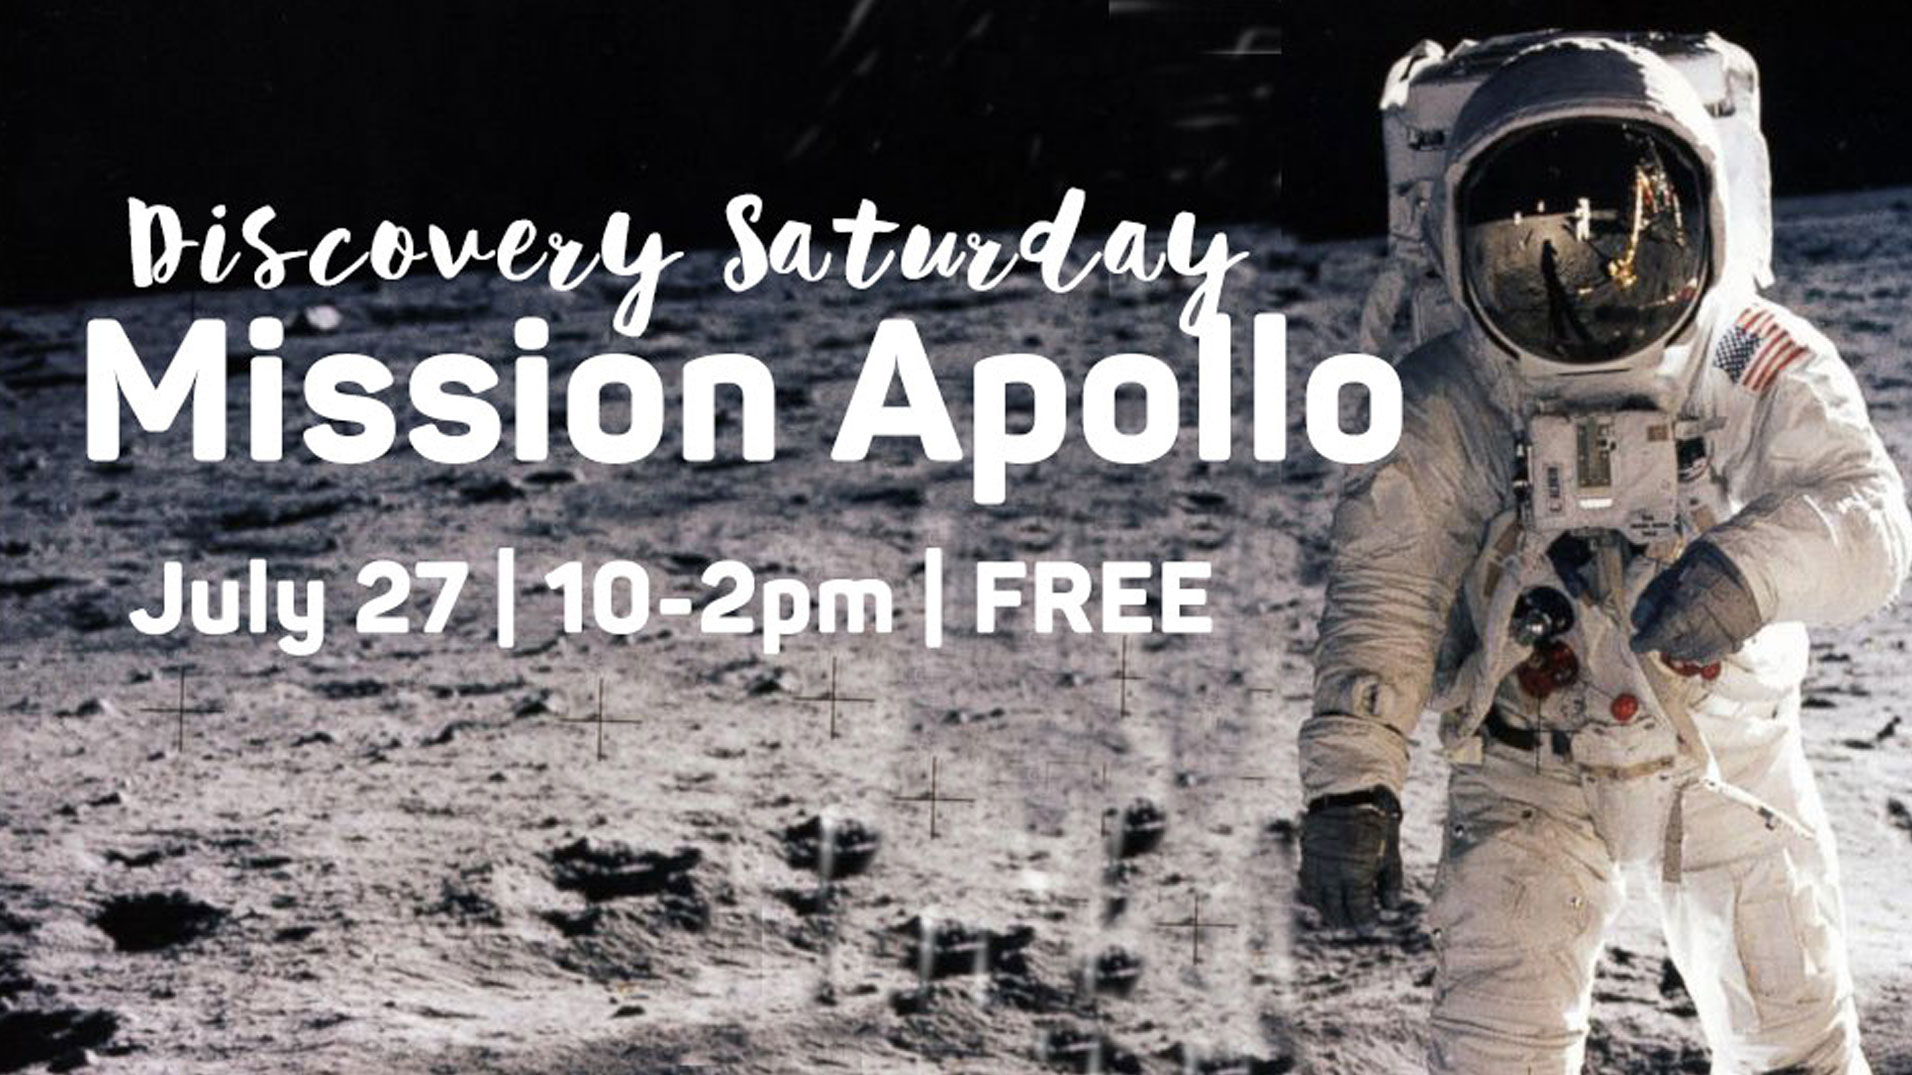 FREE Discovery Saturday Celebrating Mission Apollo